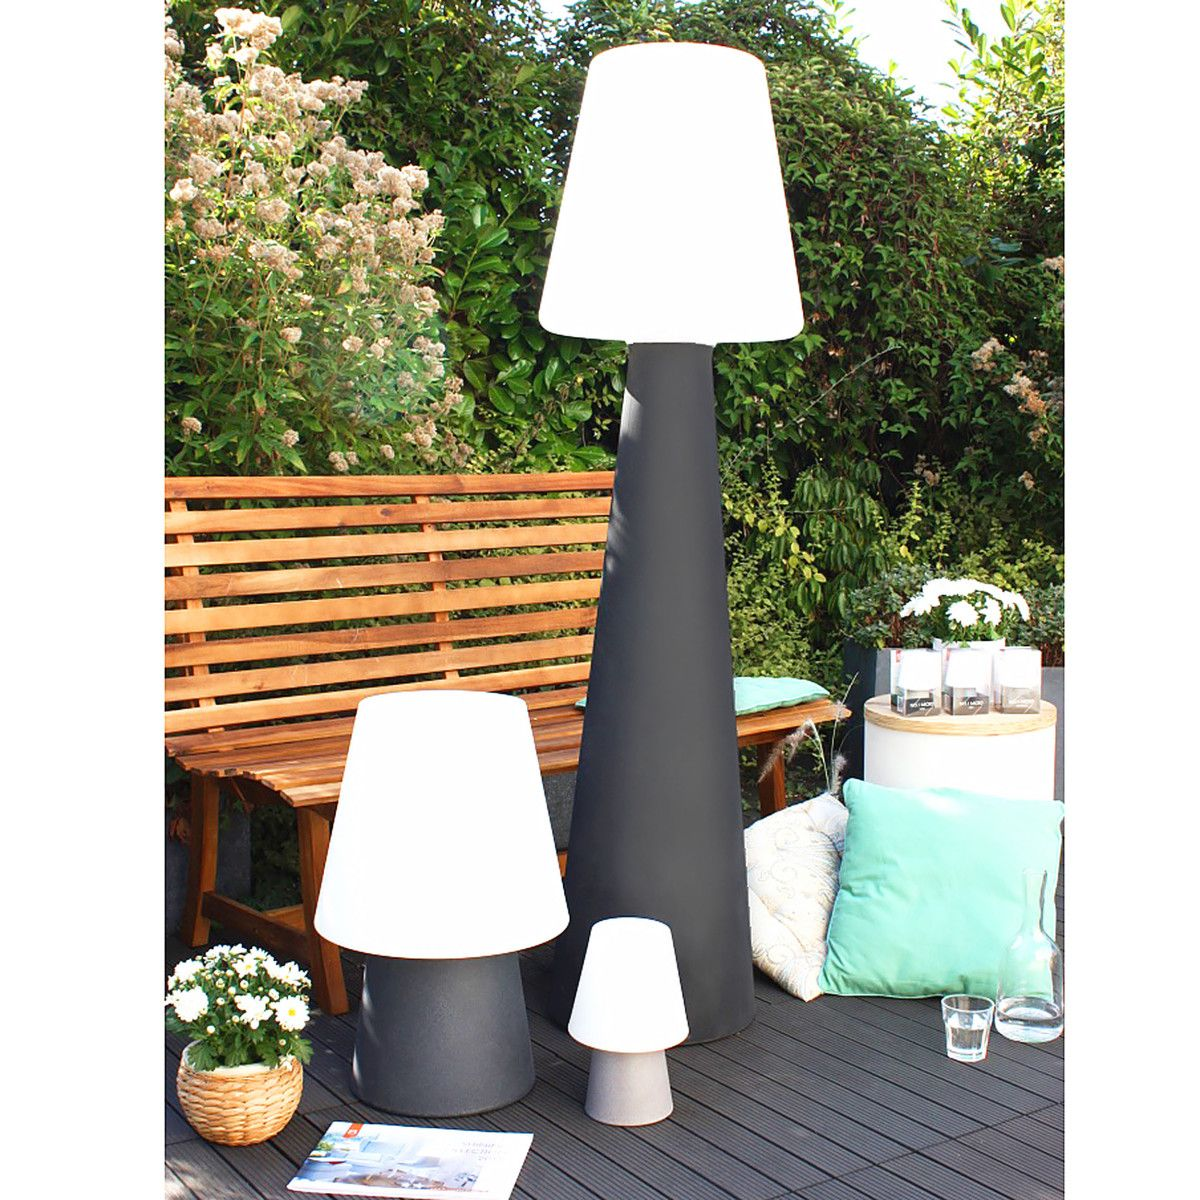 Outdoor Stehlampe Pin By Ladendirekt On Stehlampen Pinterest Outdoor Lighting